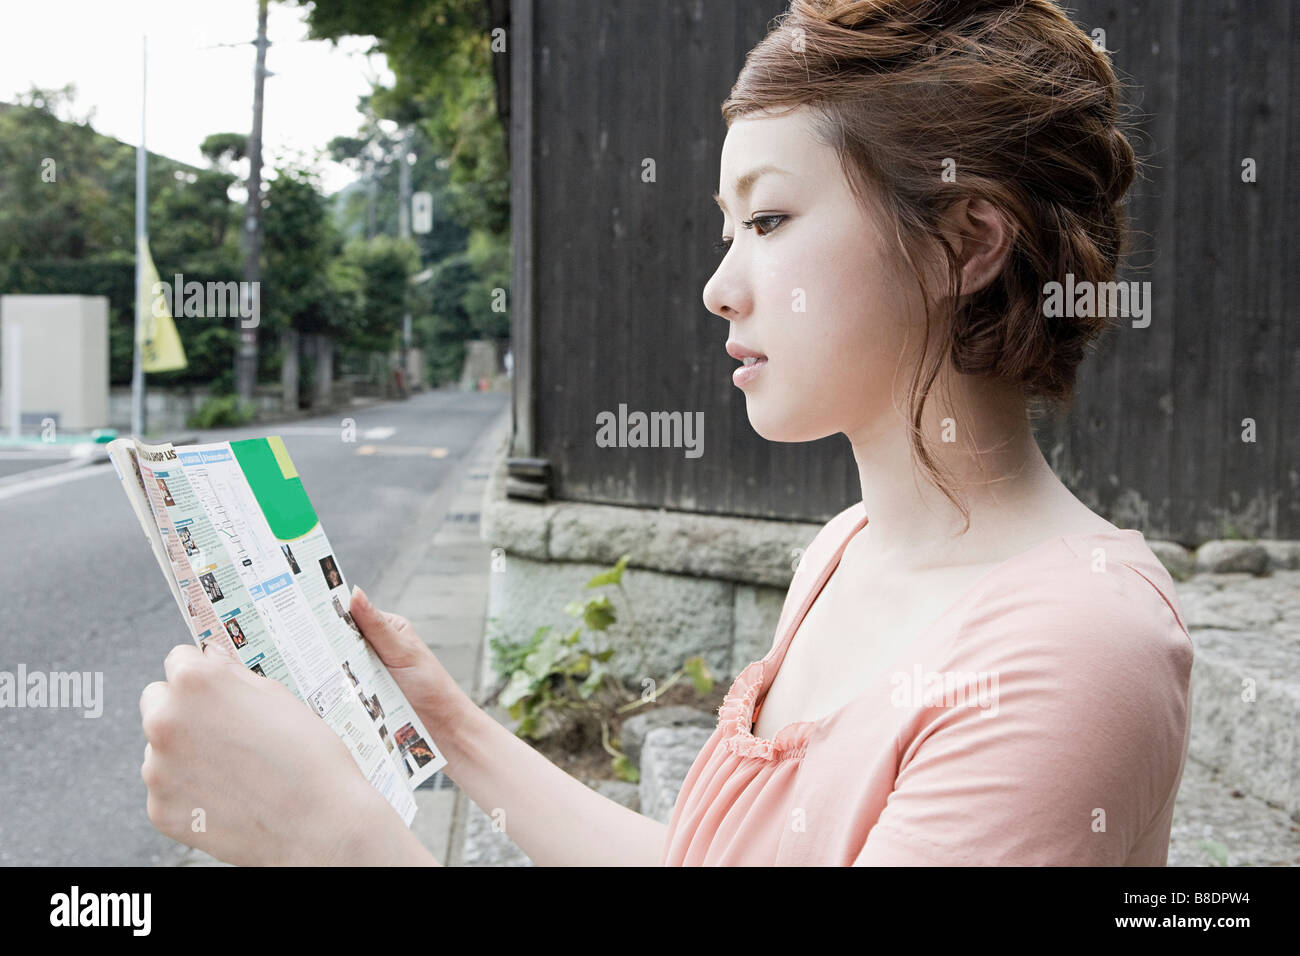 Young woman looking at map - Stock Image